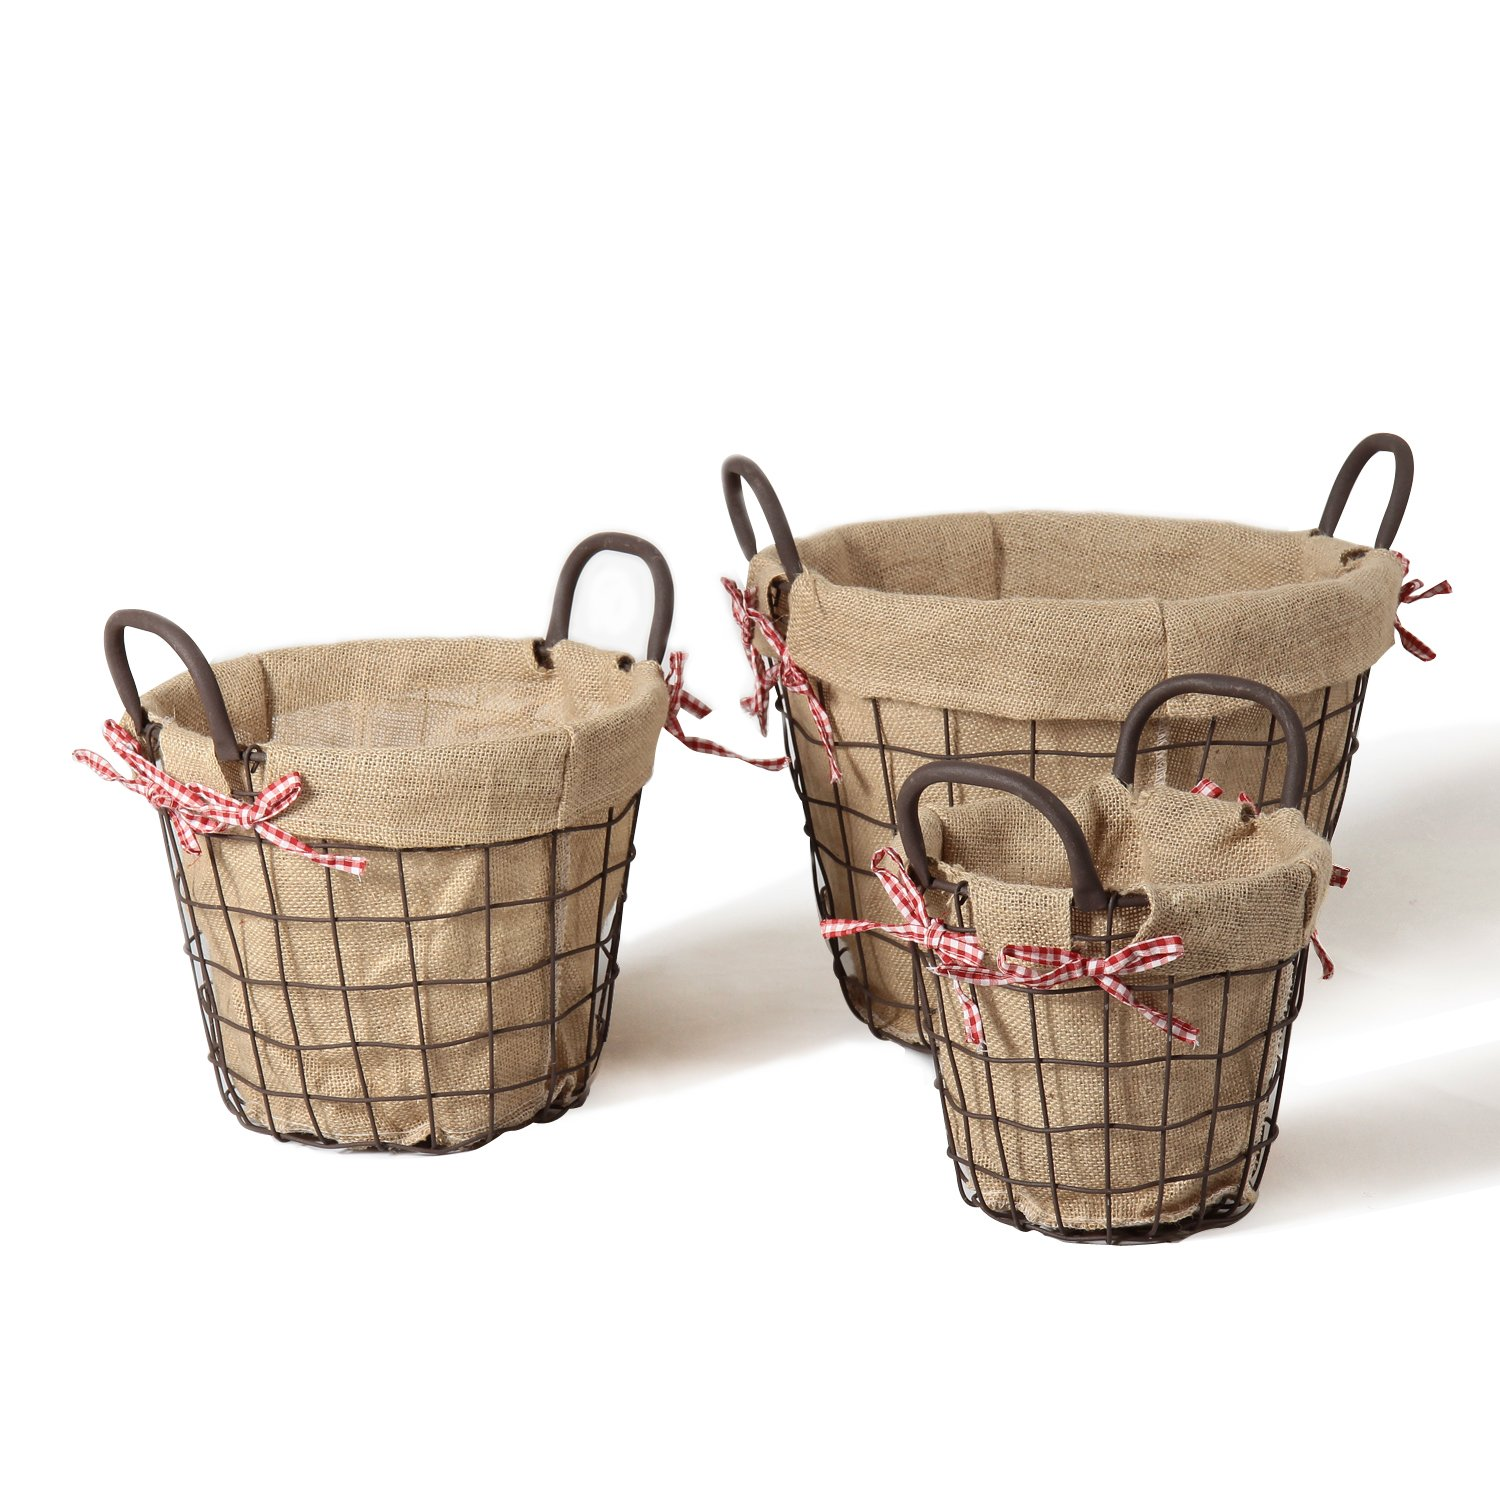 Back-to-school Sale! Adeco Multi-Purpose Milk Crate-Style Woven Baskets, Rectangular, Home Decor, Set of 3 BT0017